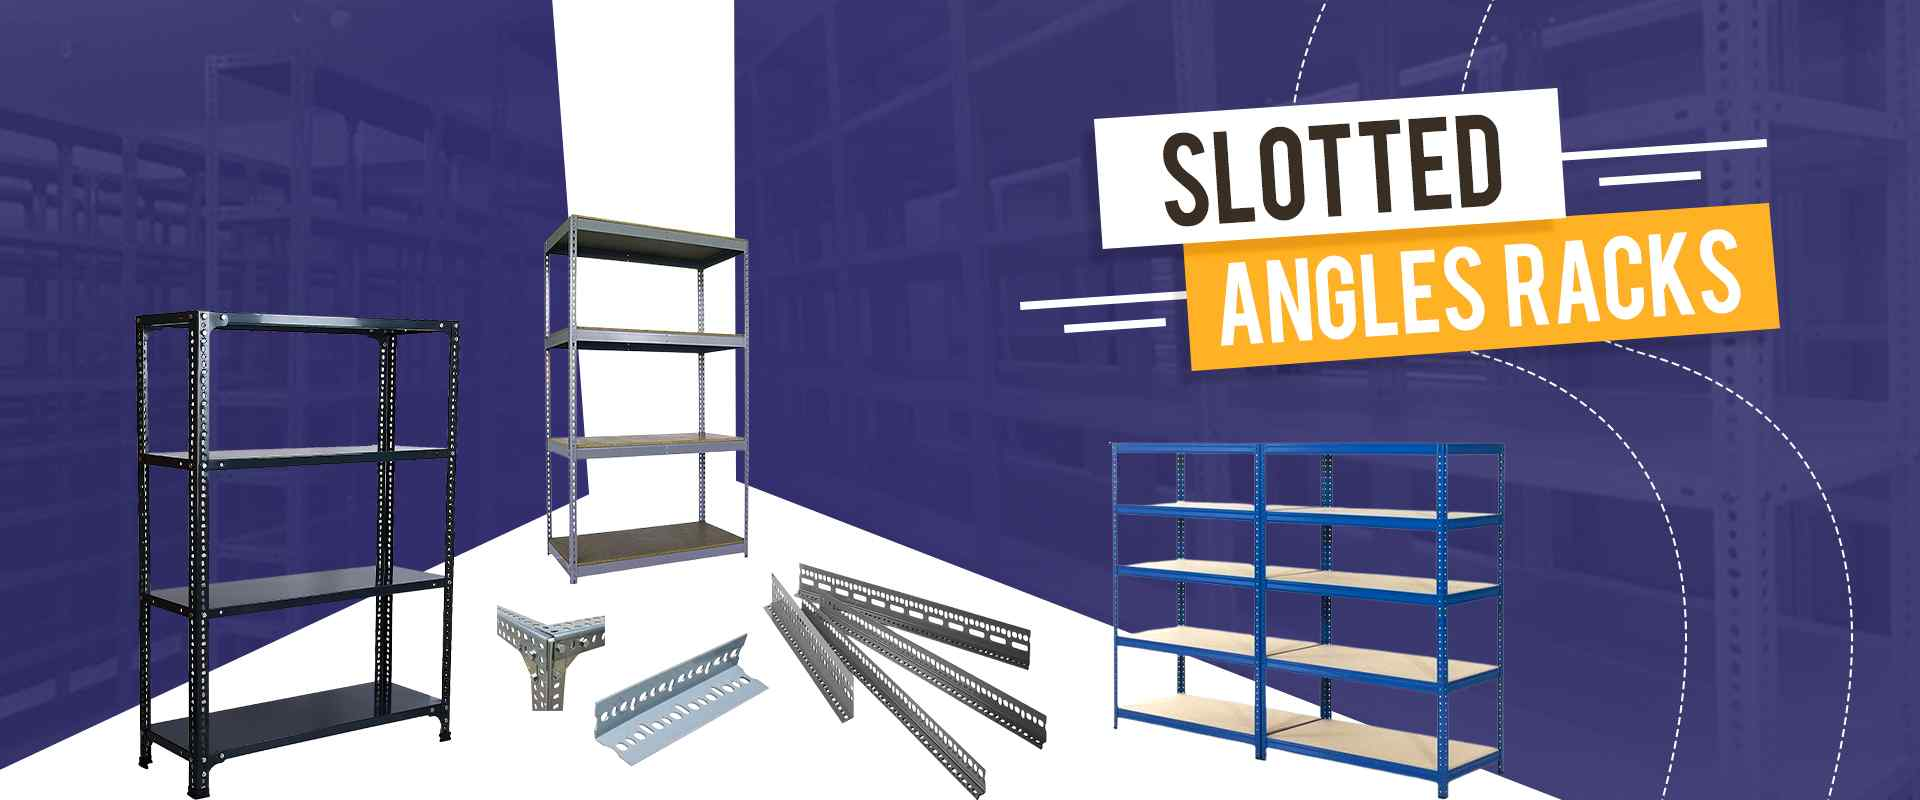 Slotted Angles Racks In Hoshiarpur